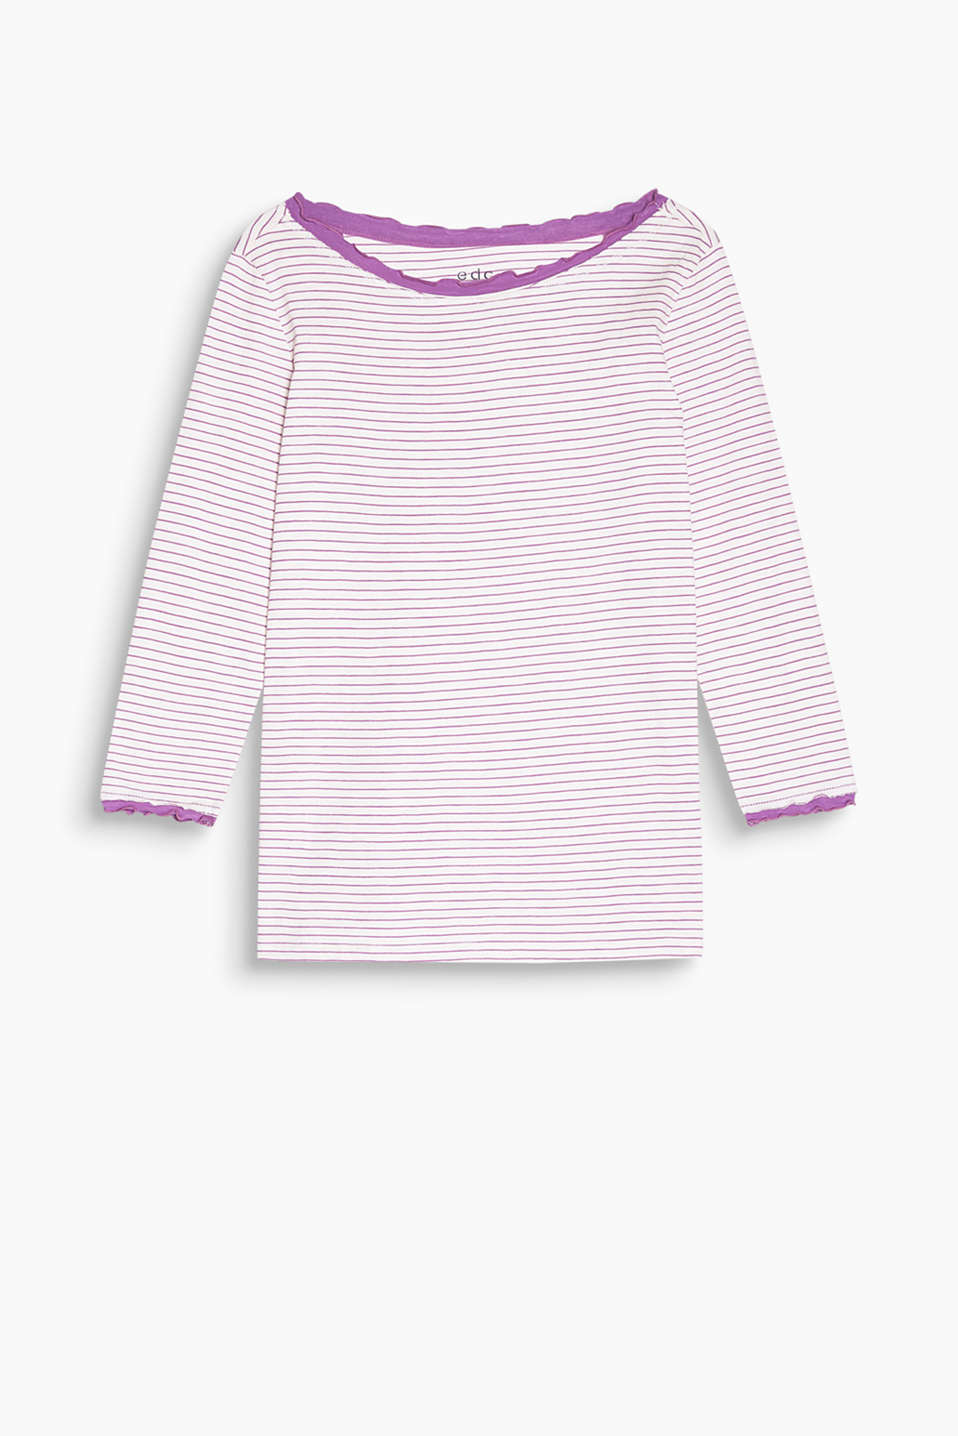 Striped top with pretty layered effects, 100% cotton